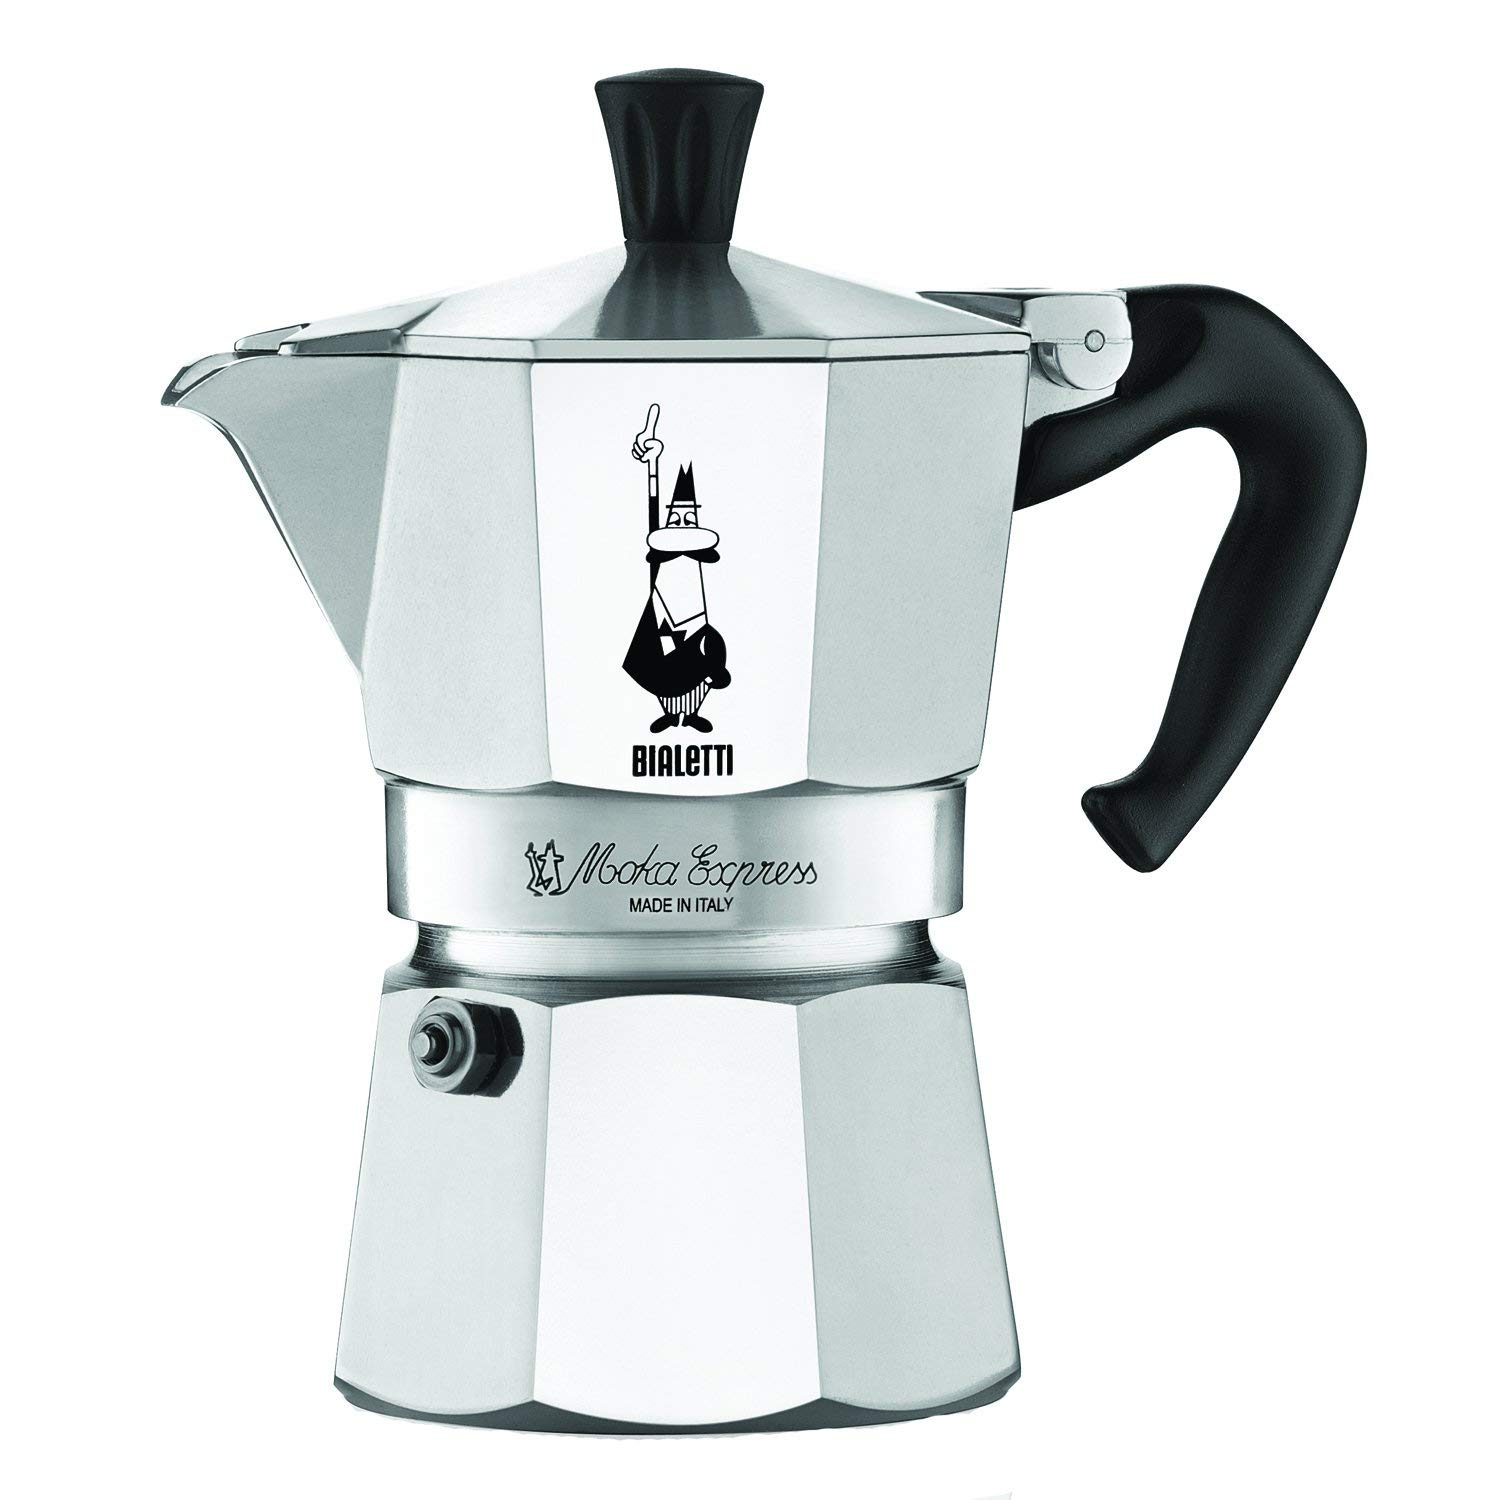 Gifts for Coffee Lovers: Bialetti Moka Express